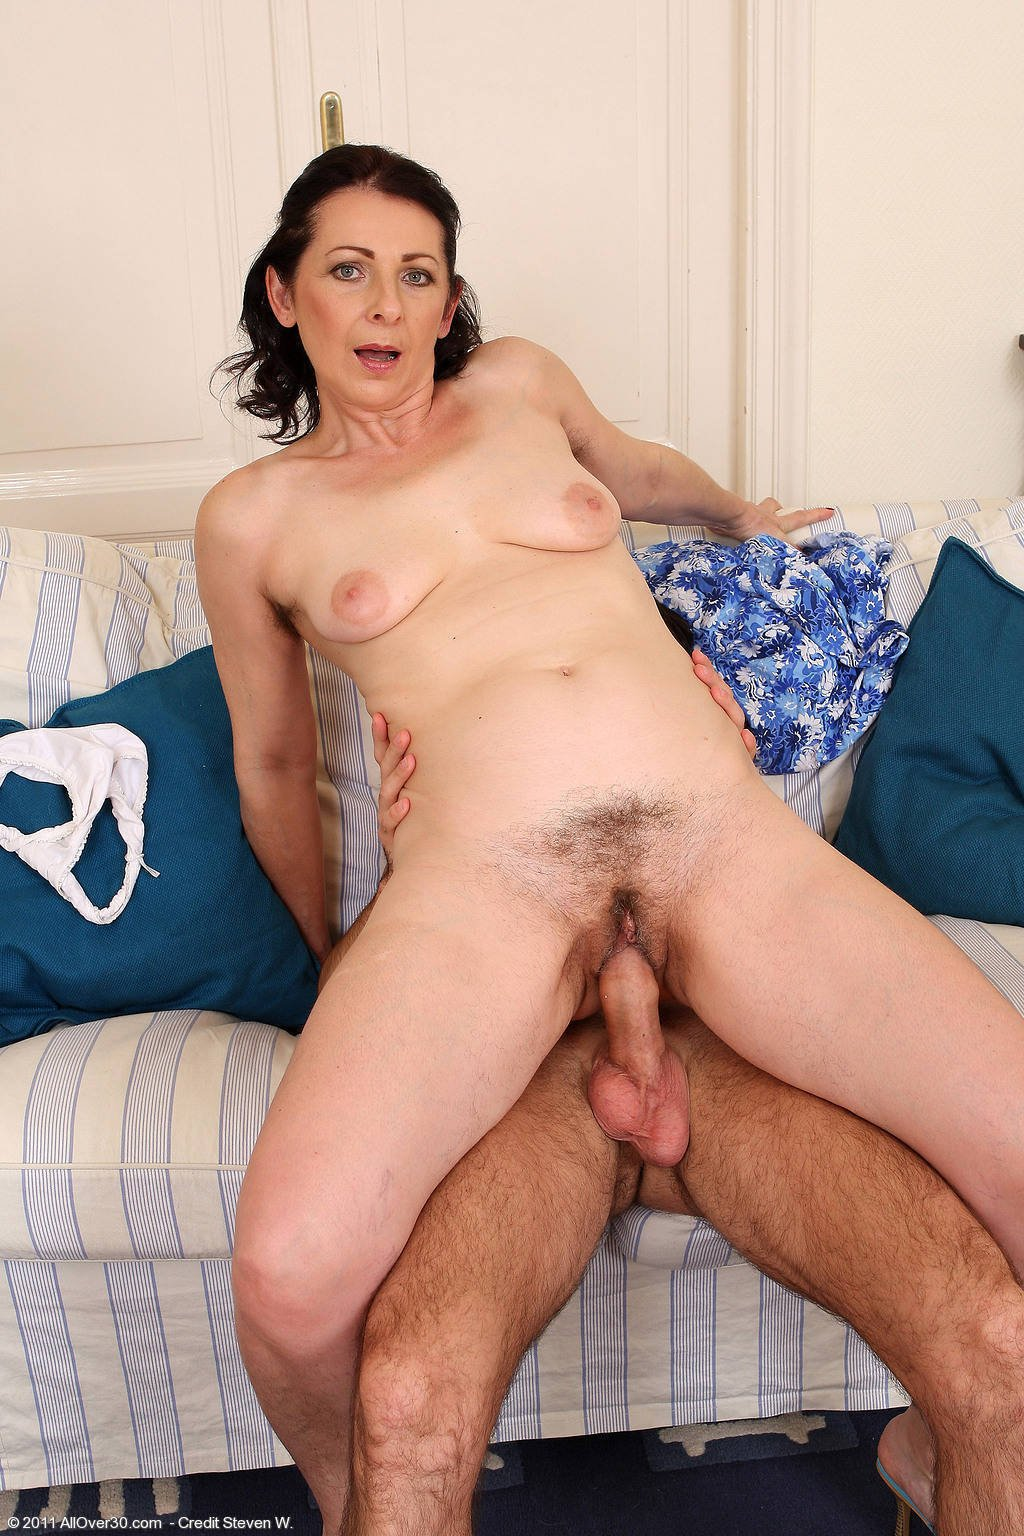 Hairy mature pics, free milf porn pictures